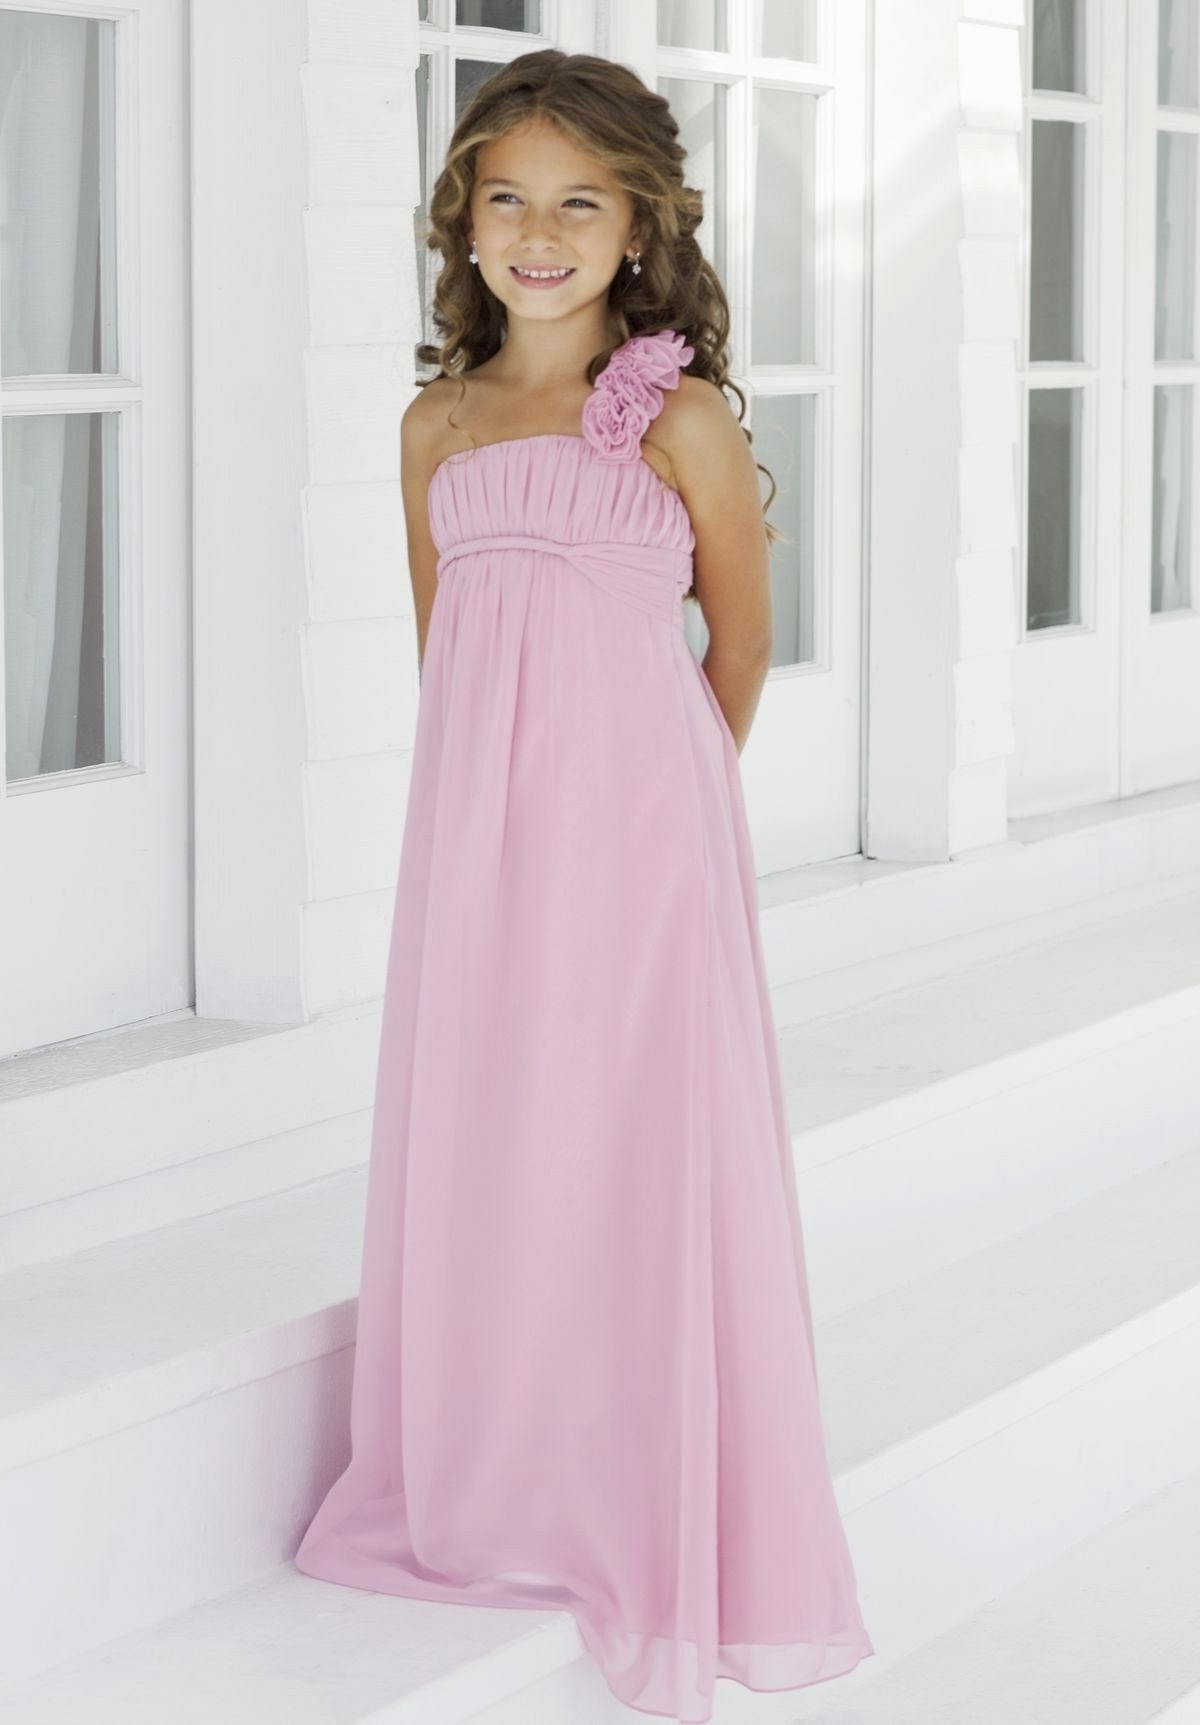 Cute Hairstyles For Junior Bridesmaids (View 4 of 15)